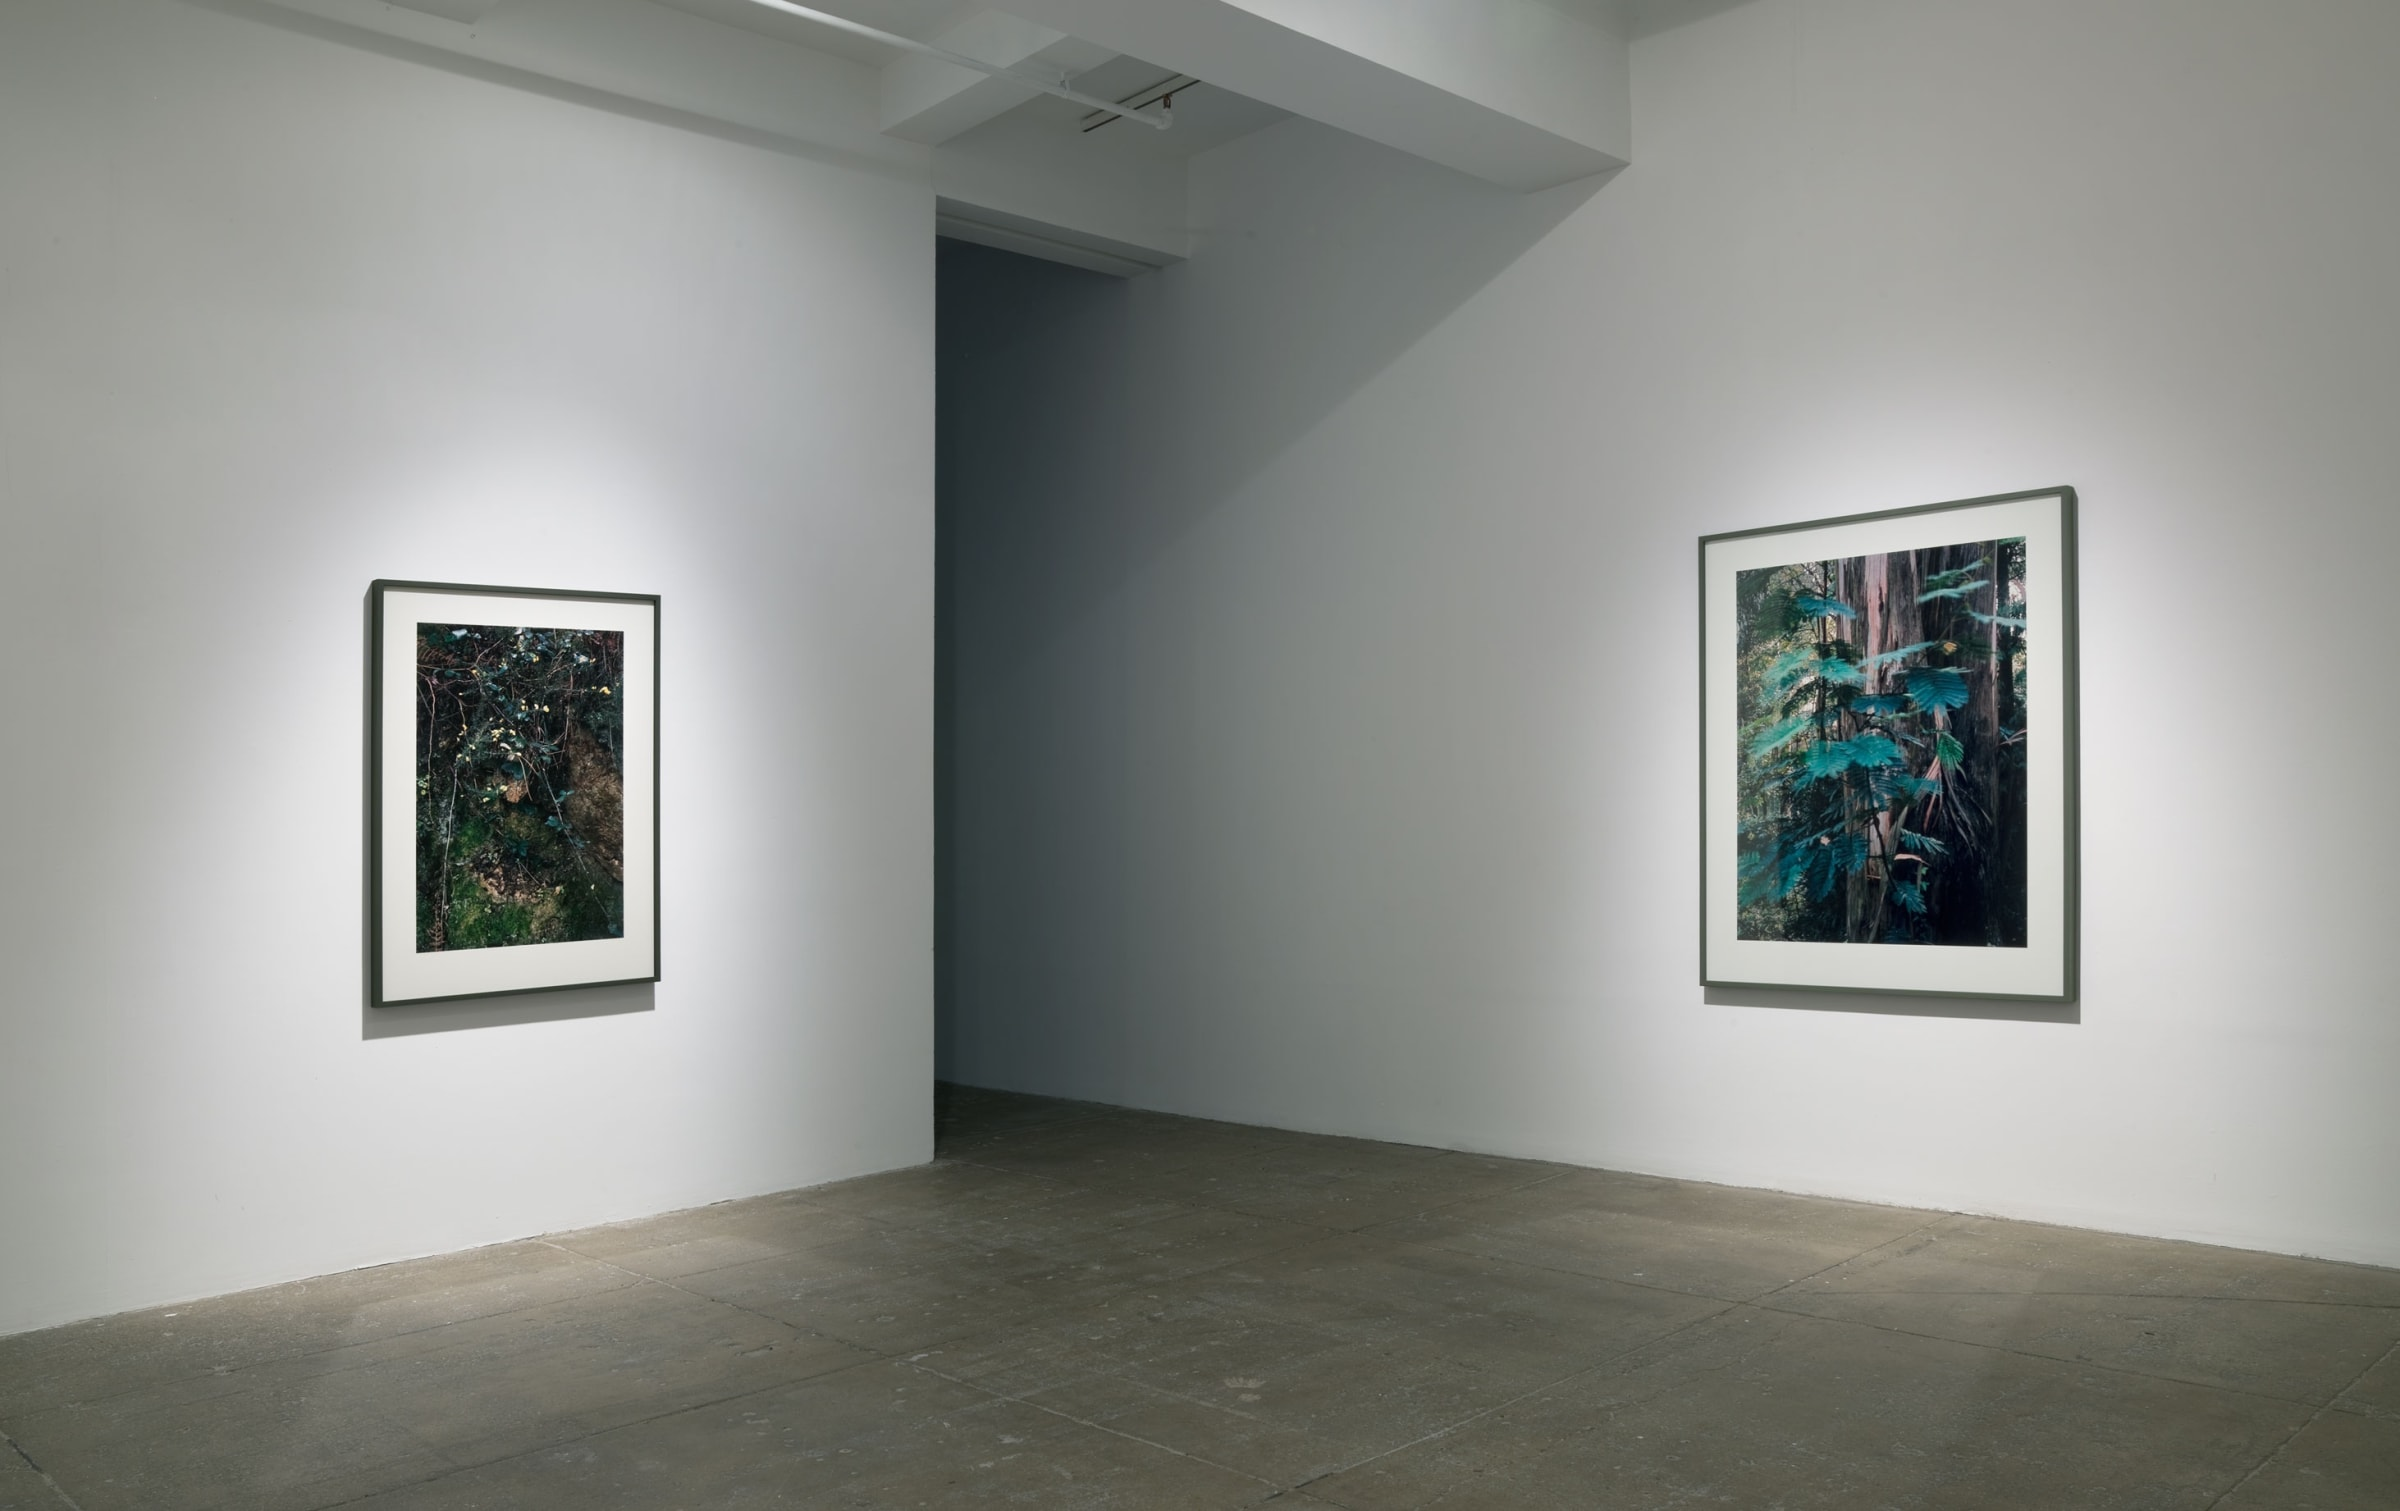 Two large photographs of plants and trees hang in the corner of a room.